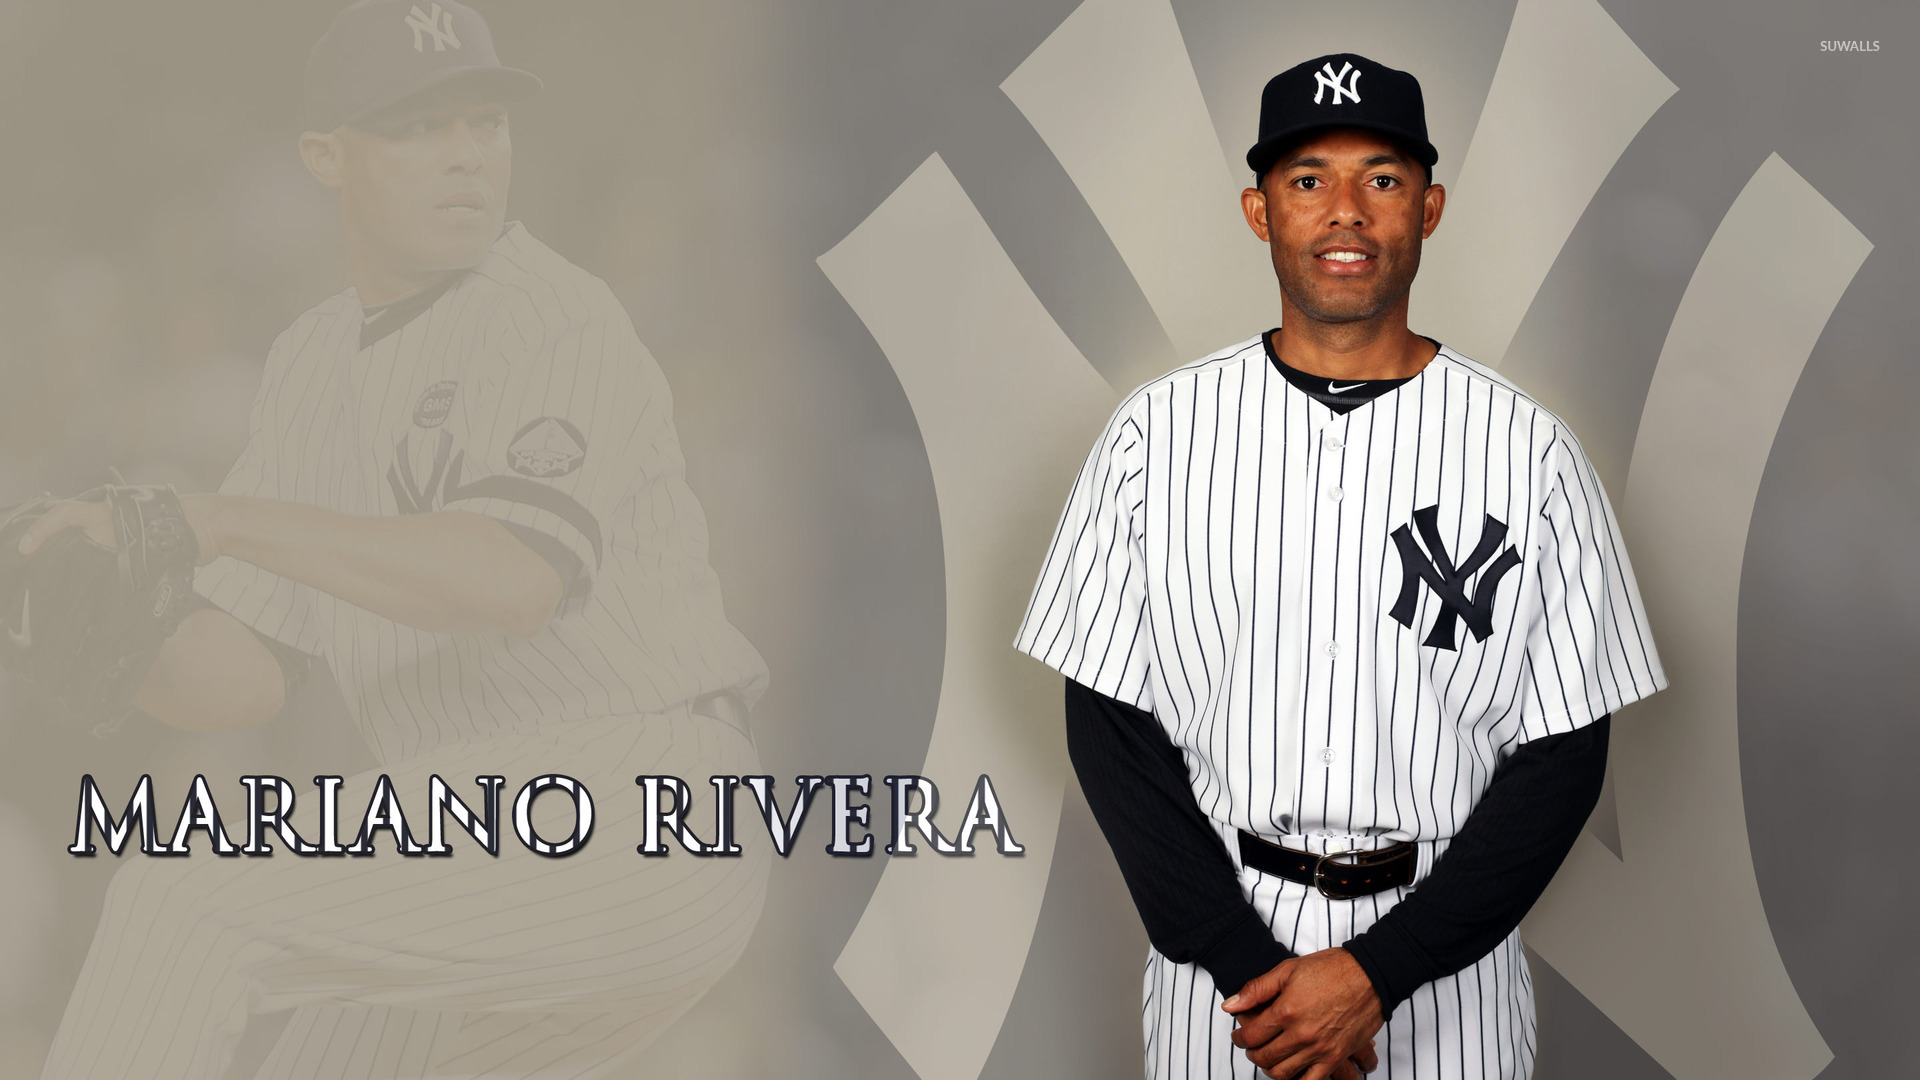 Mariano Rivera wallpaper - Sport wallpapers - #19708